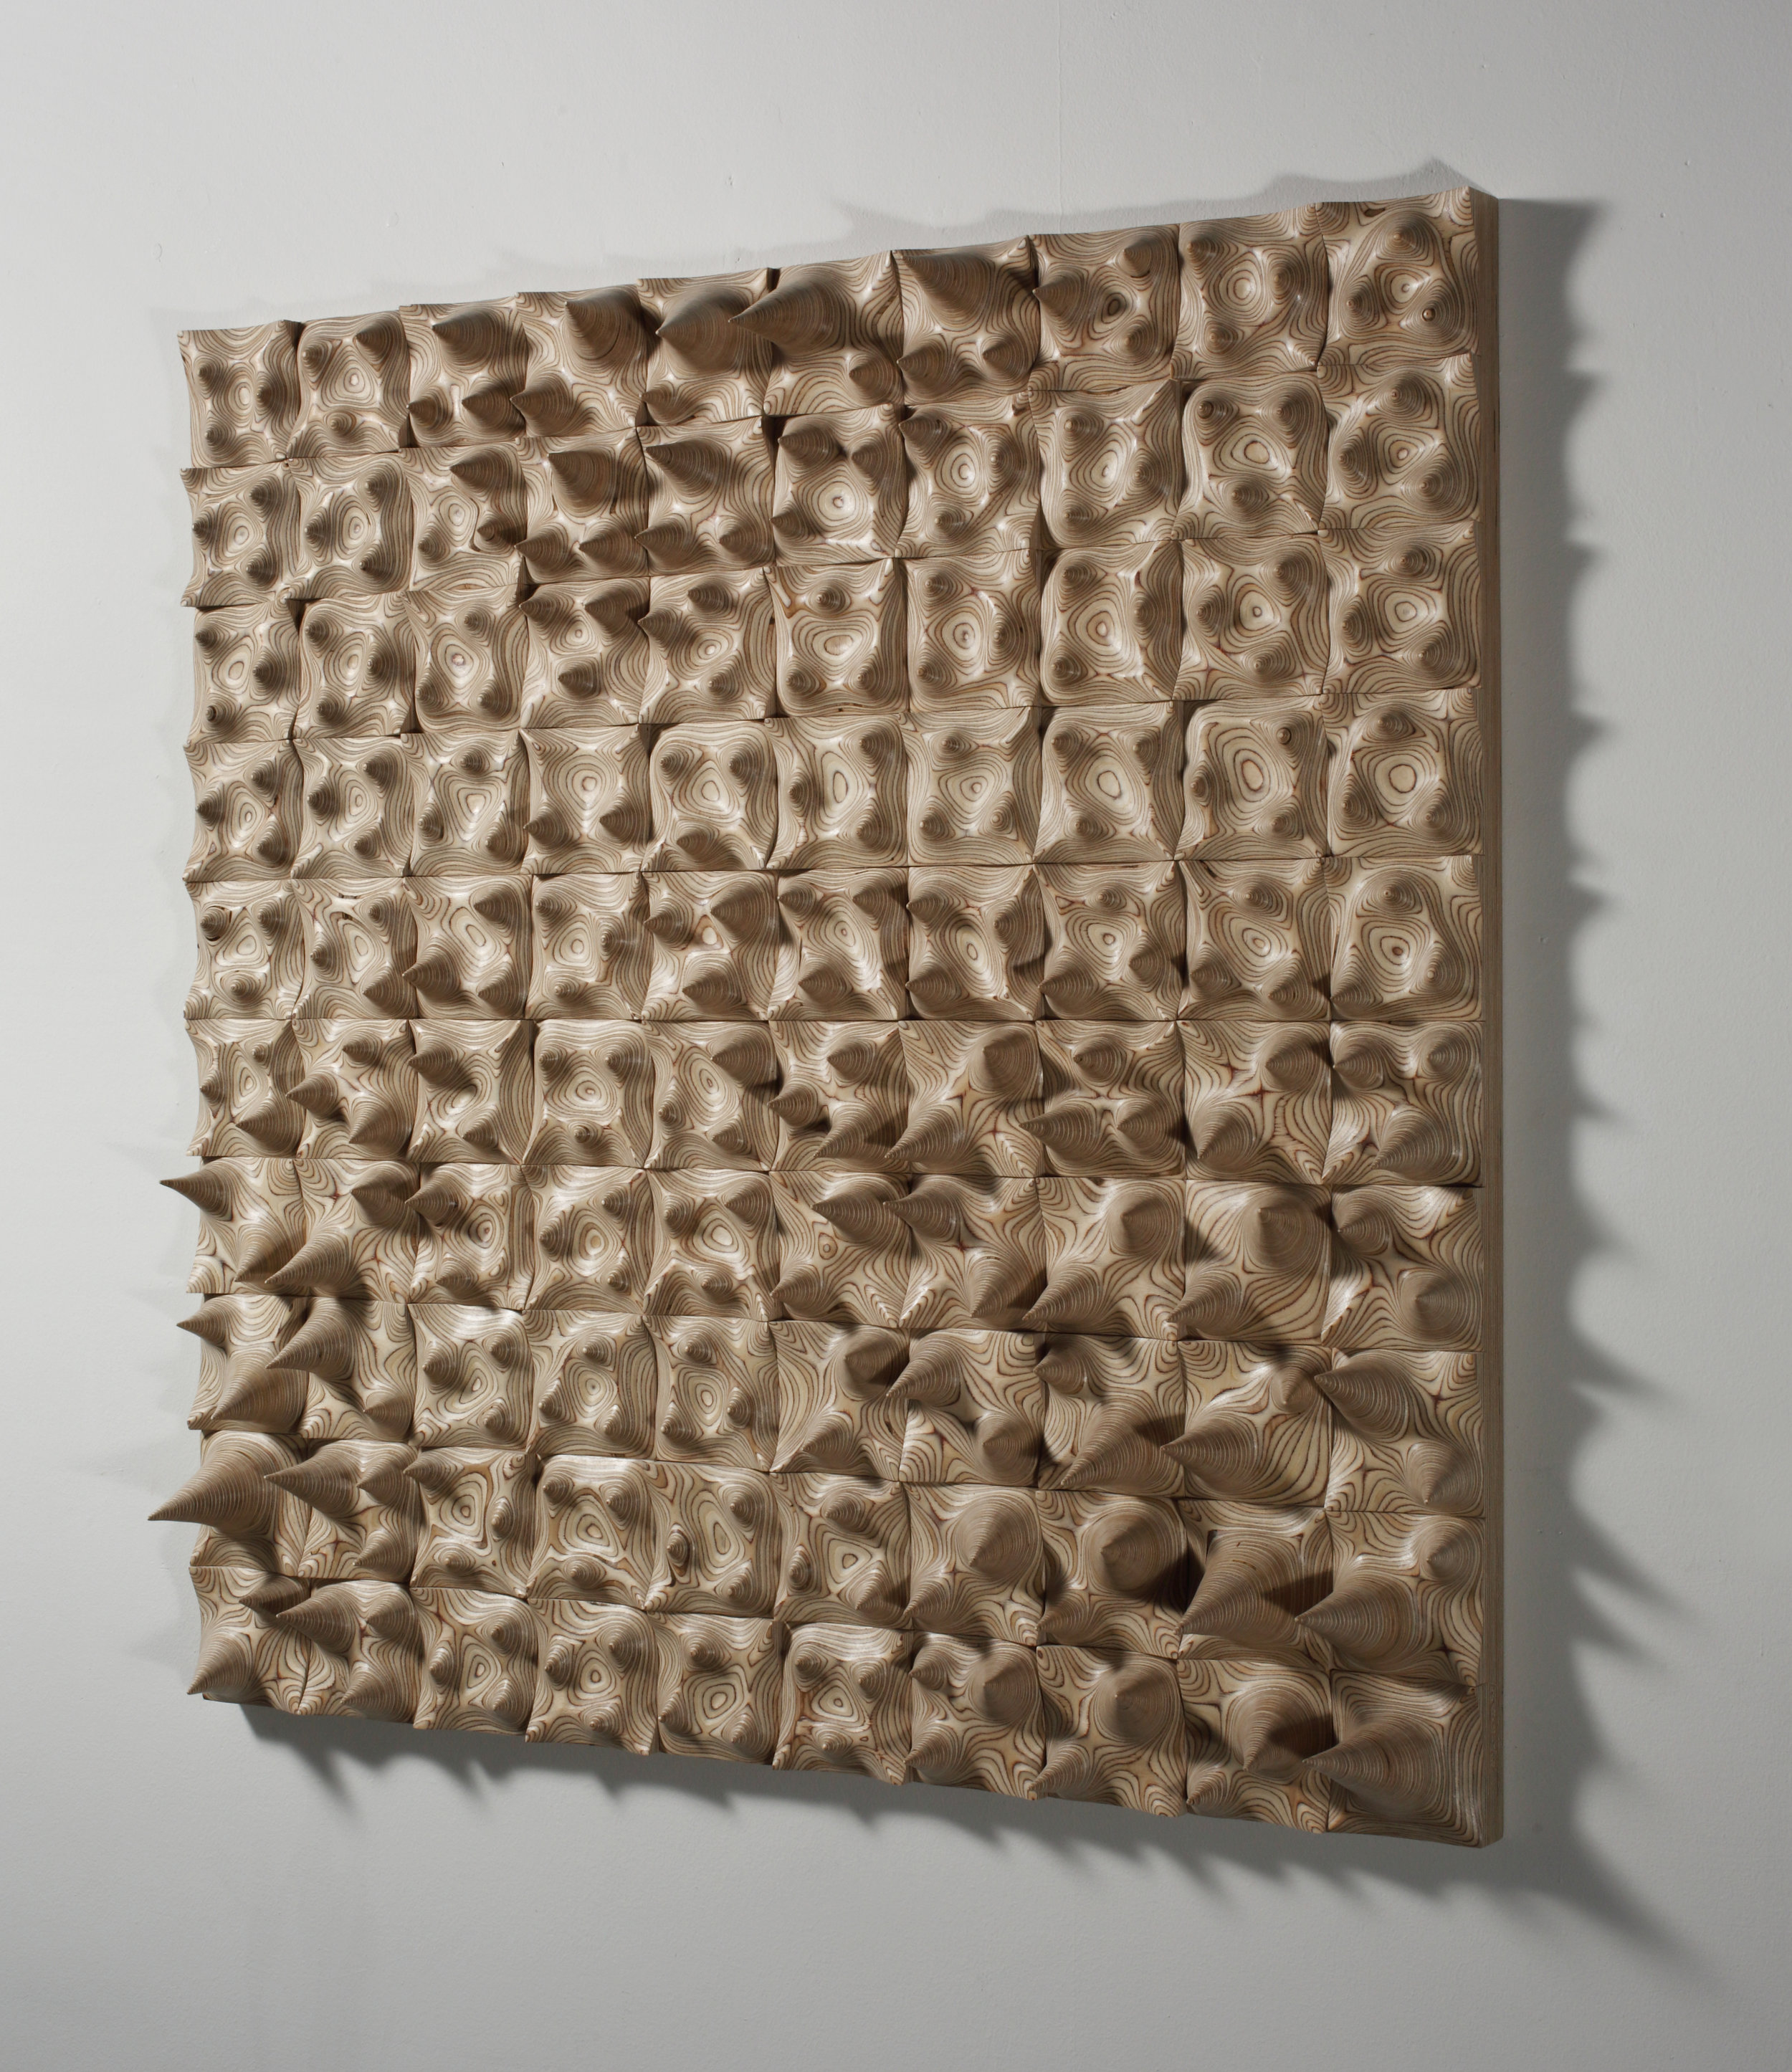 Jongrye Cha ,  Expose Exposed 130915 , 2013.Wood.44 x 44 x 6 in.Courtesy of Cynthia Reeves Gallery.2016.JC.01. Photo: Jeong Jinwoo, BauFoto,Courtesy of Cynthia Reeves Gallery  METHOD: Dremel/rotary grinders and other hand tools, hand sanding